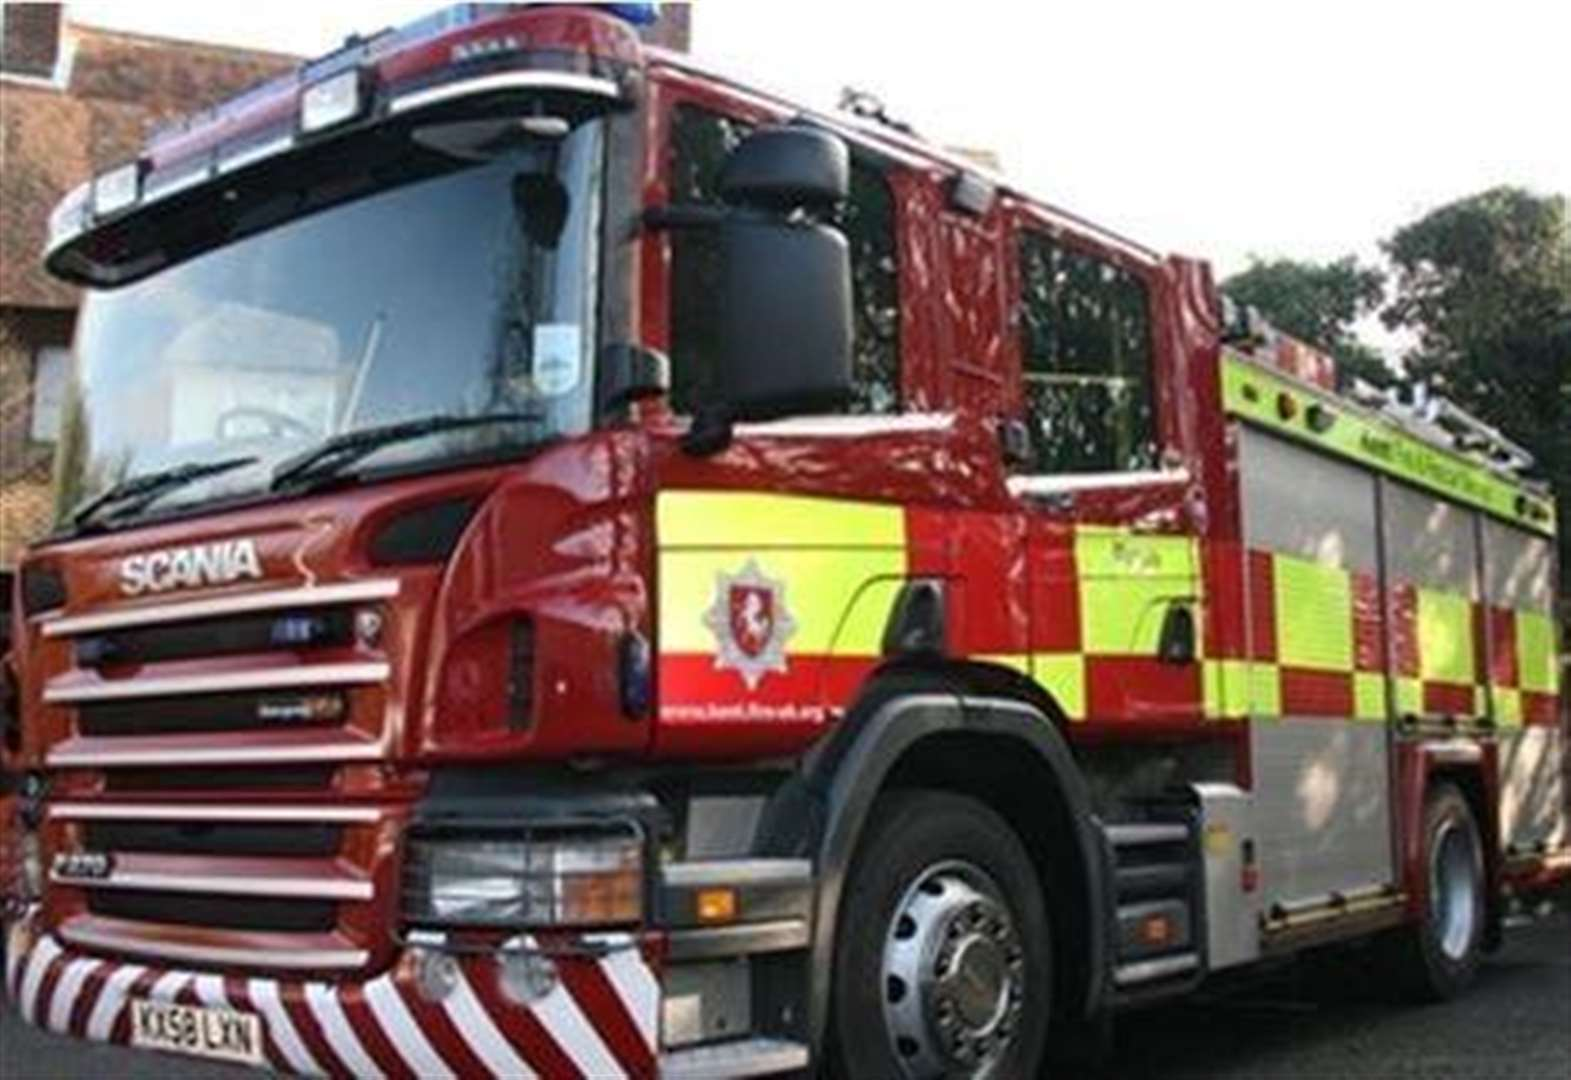 Fire crews tackle electrical cupboard blaze